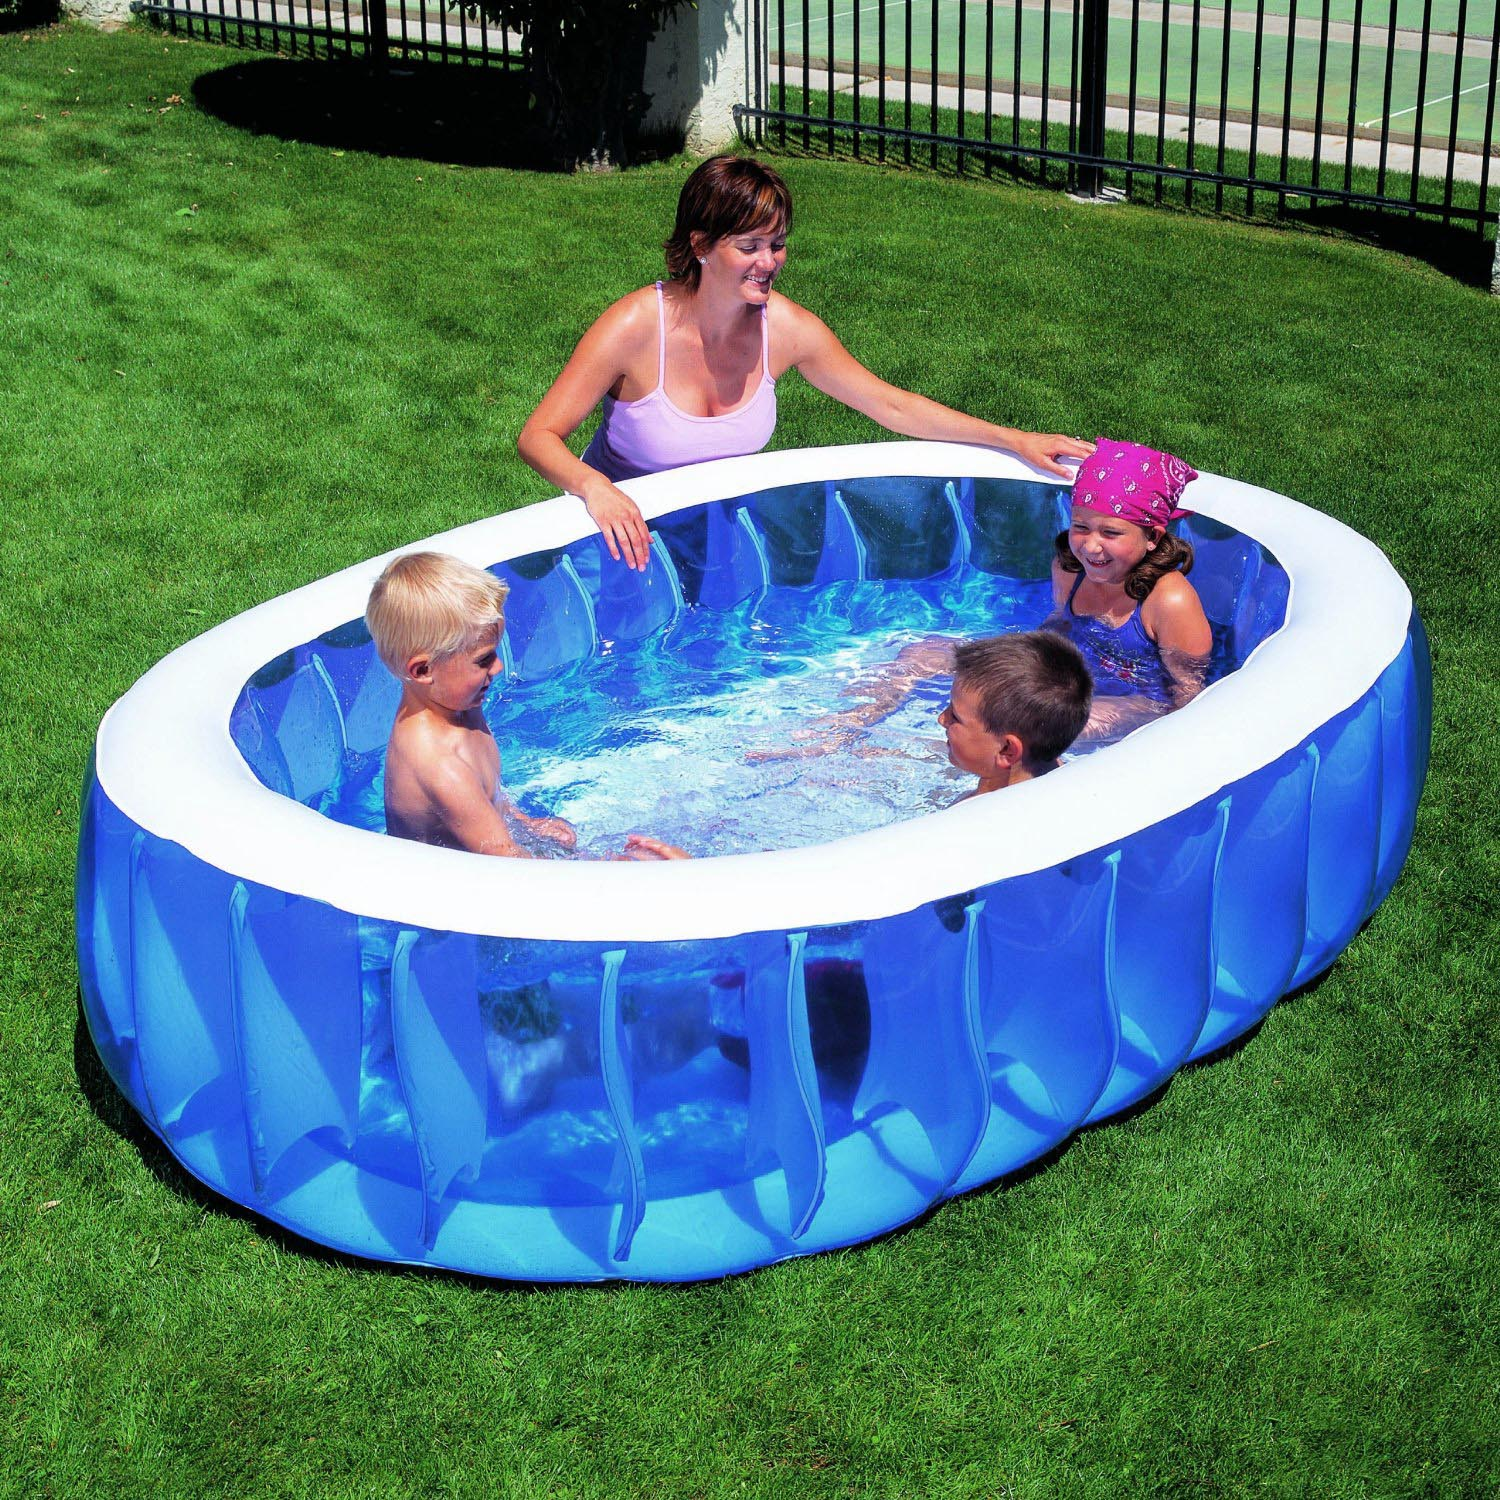 Pool Reinigungsset Pumpe Summer Waves Fast Set Quick Up Pool 366x91cm Swimmingpool